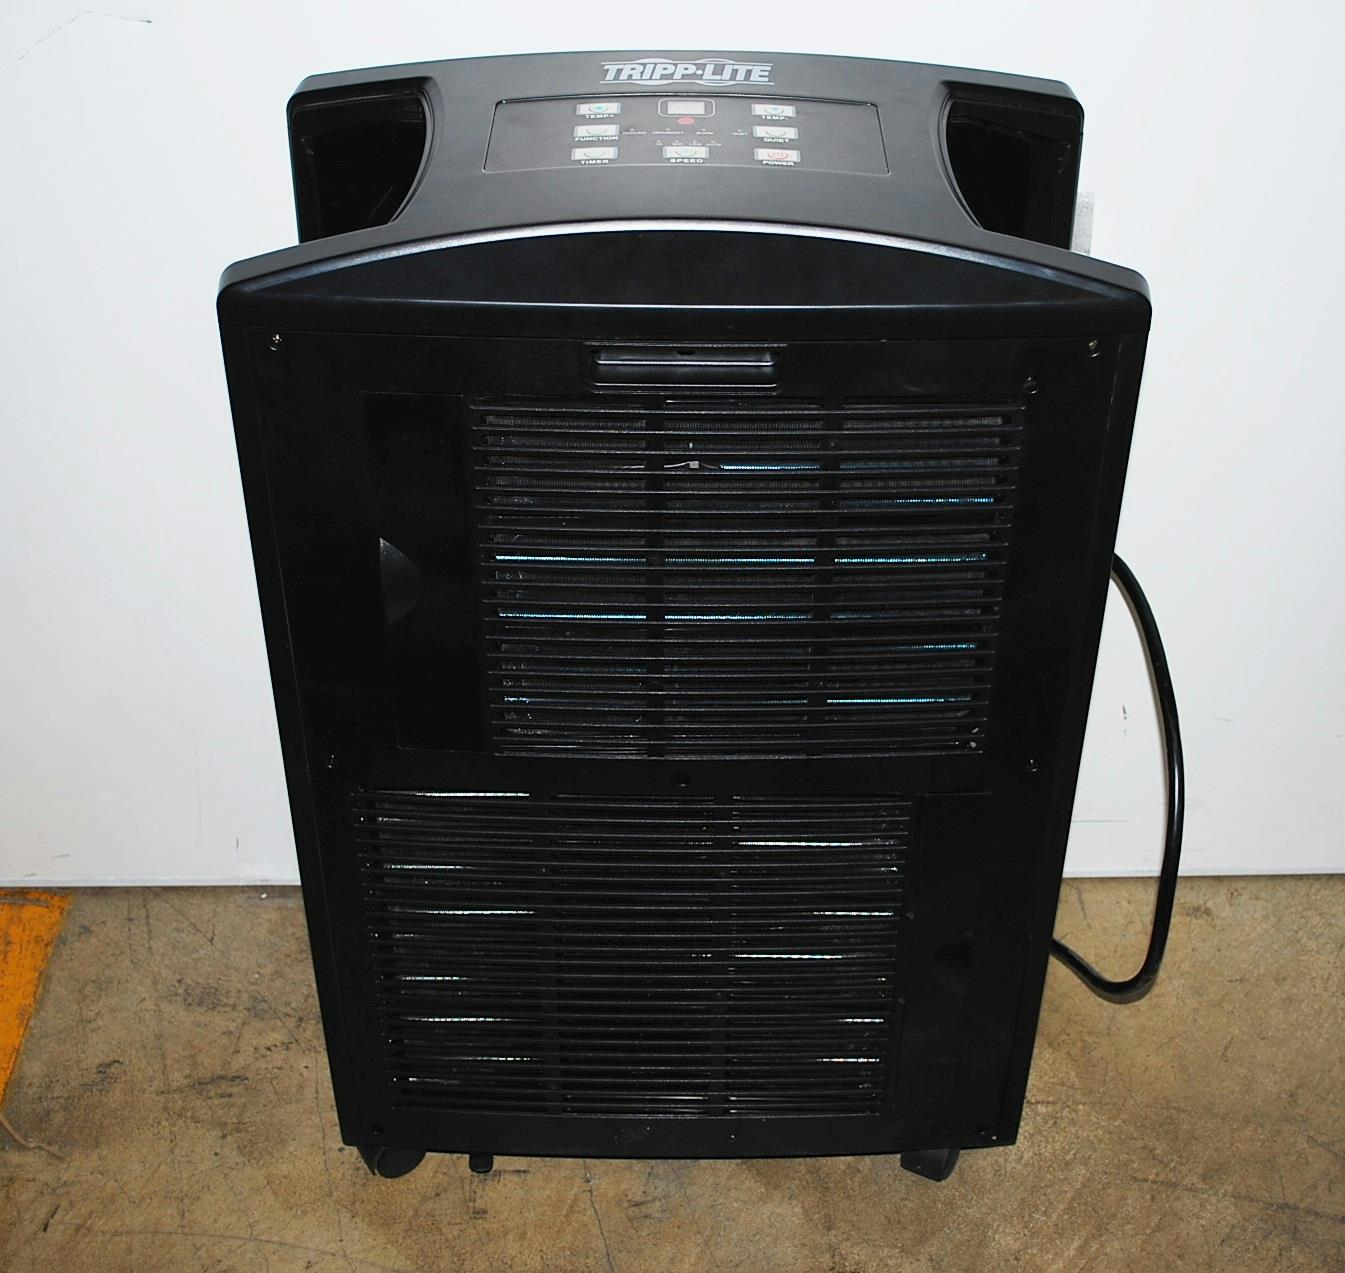 Tripp lite 120v portable air conditioning unit srcool12k for 120v window air conditioner